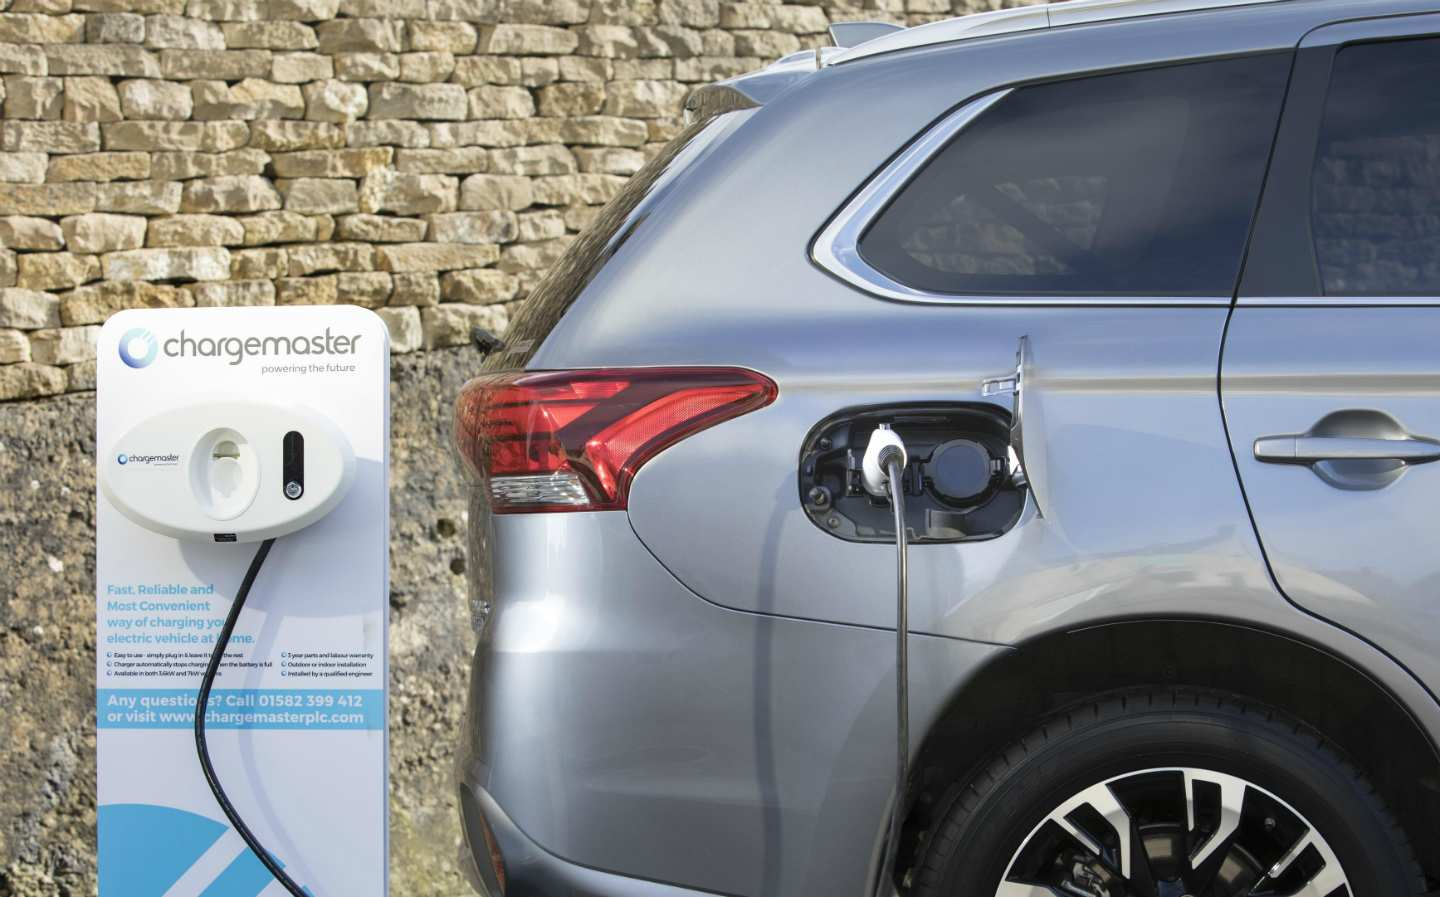 Hybrid Vehicles Sales Doubled in EU in Q1, Traditional Fossil-fuel Cars Dropping